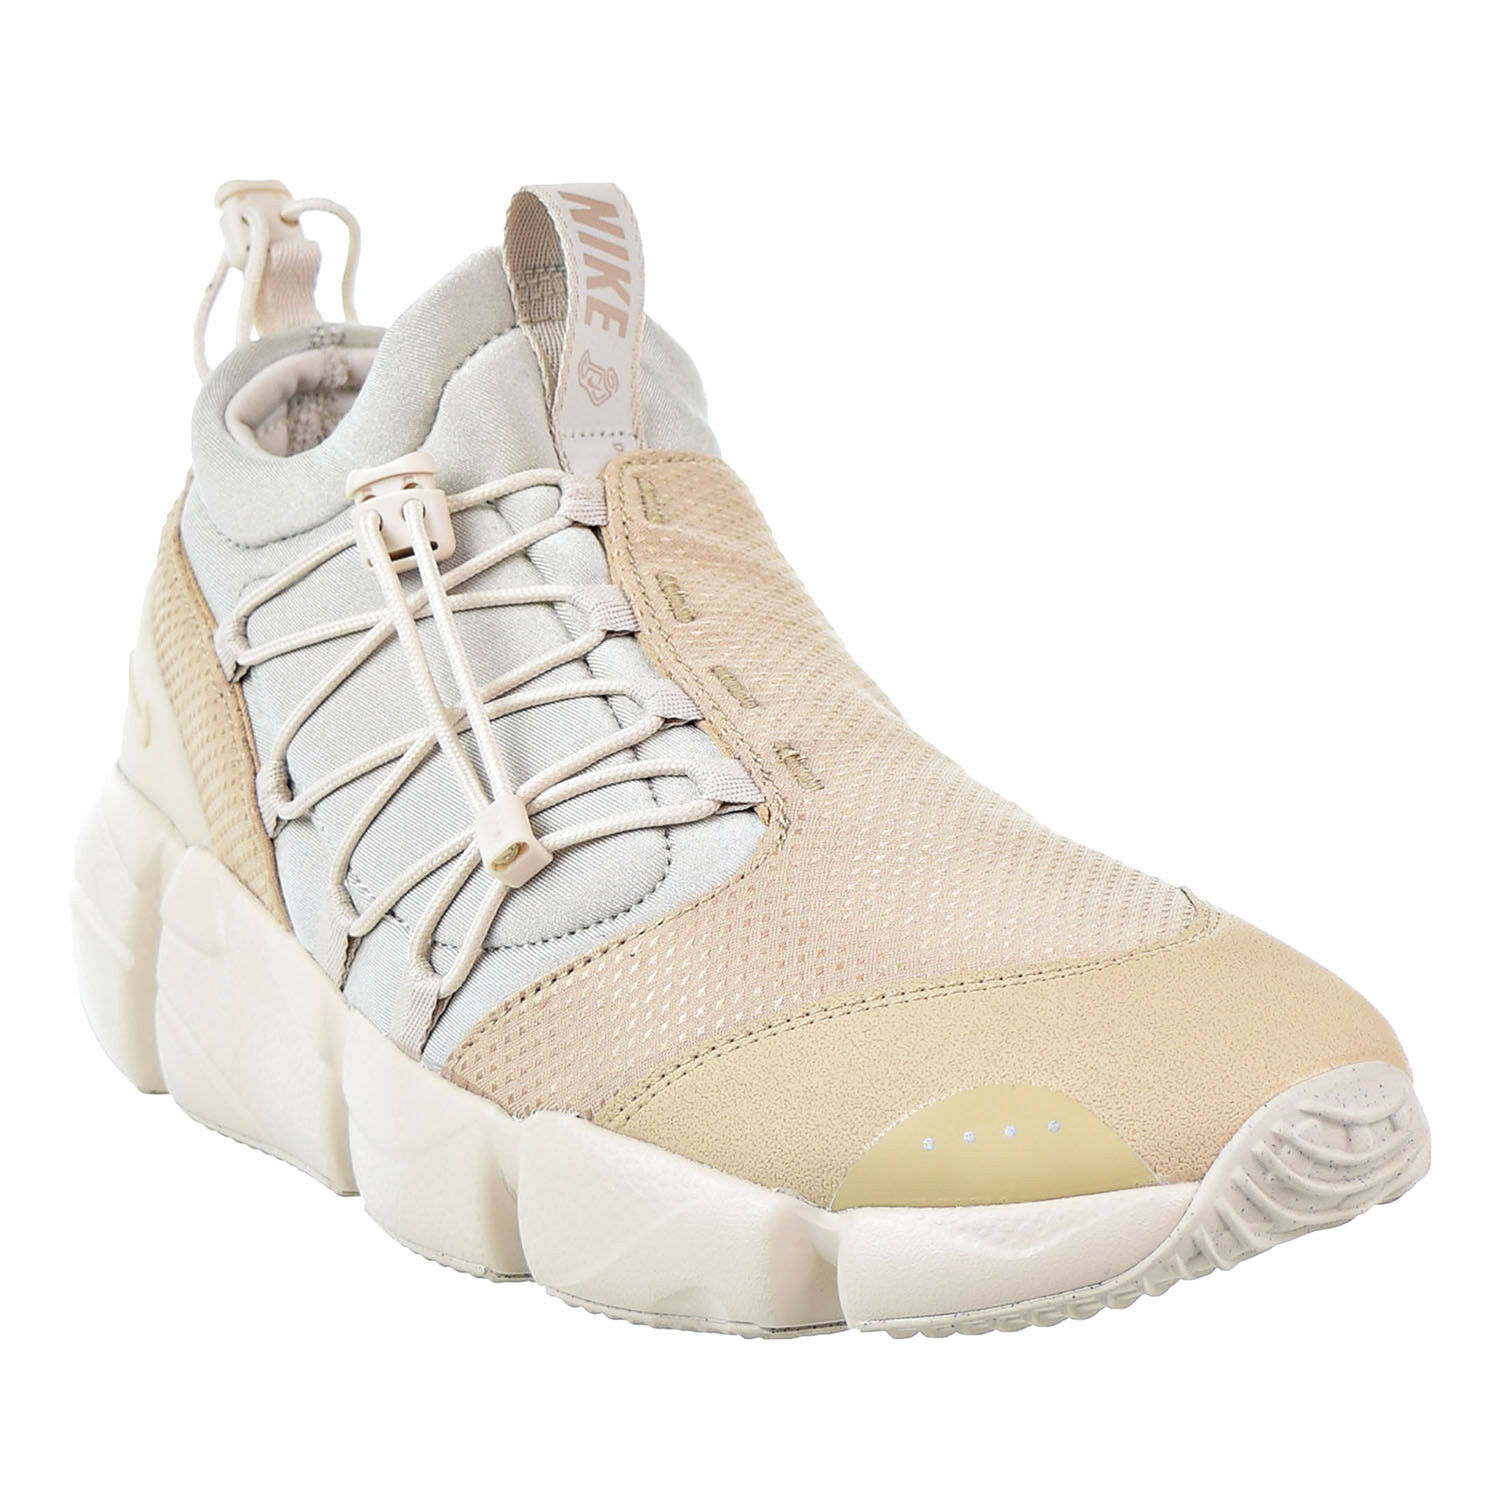 Nike Air Footscape Utility DM Men's shoes Light Orewood Brown Brown Brown ah8525-100 08992e